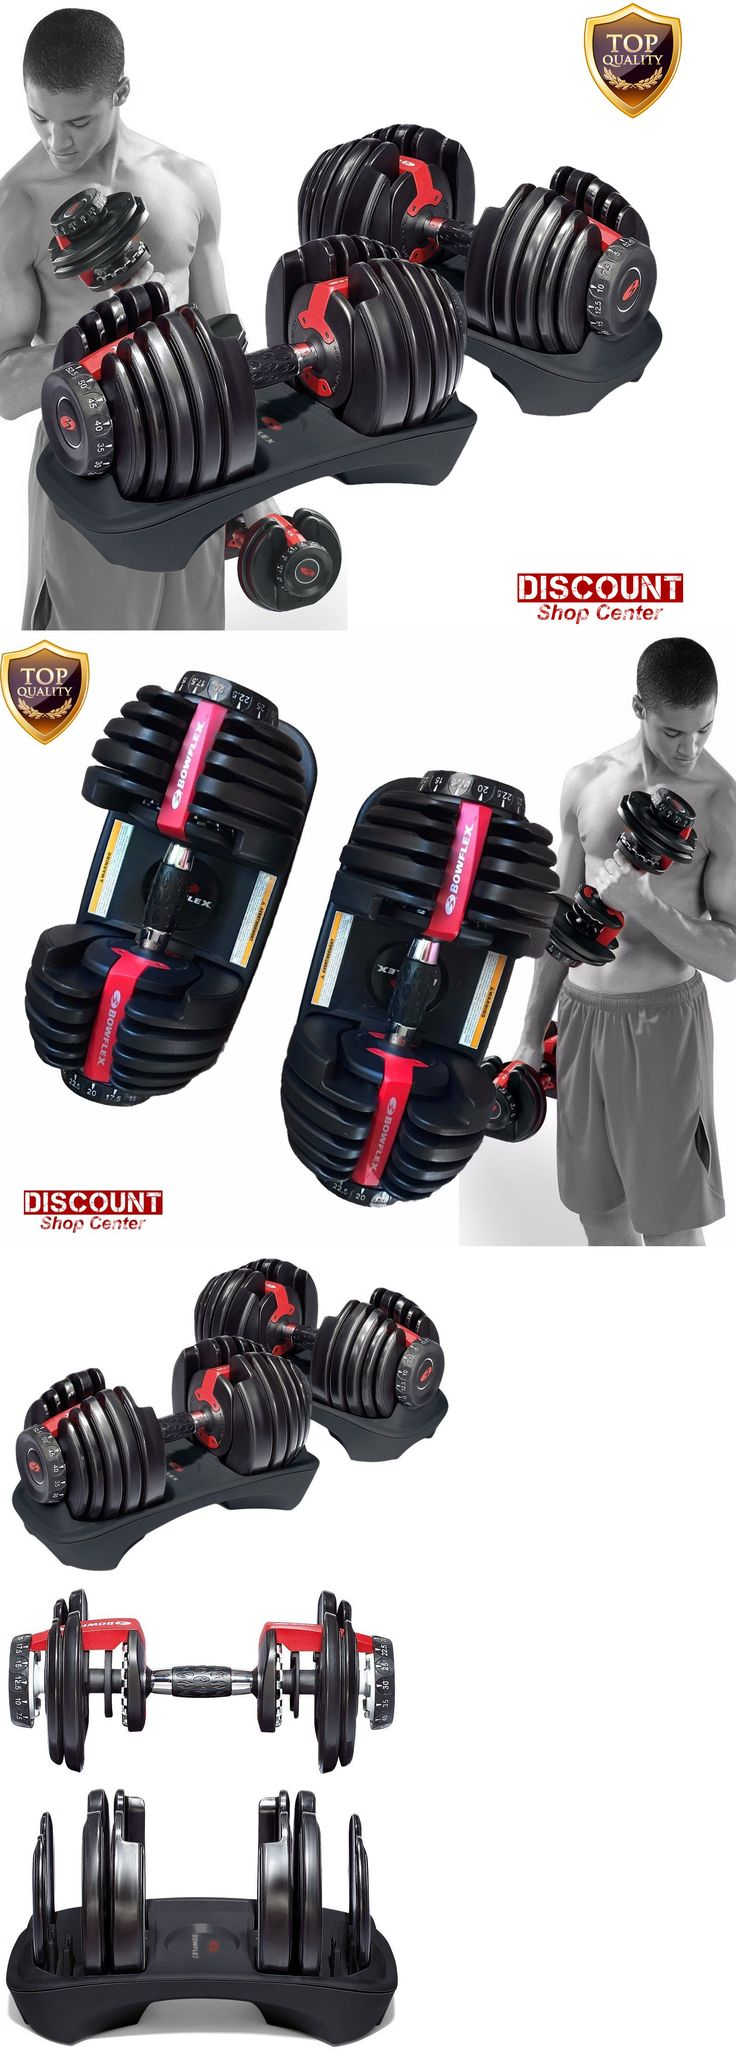 Dumbbells 137865: Weight Dumbbells Set Of Two Fitness Workout Exercise Gym New Bowflex Selecttec -> BUY IT NOW ONLY: $399.99 on eBay!